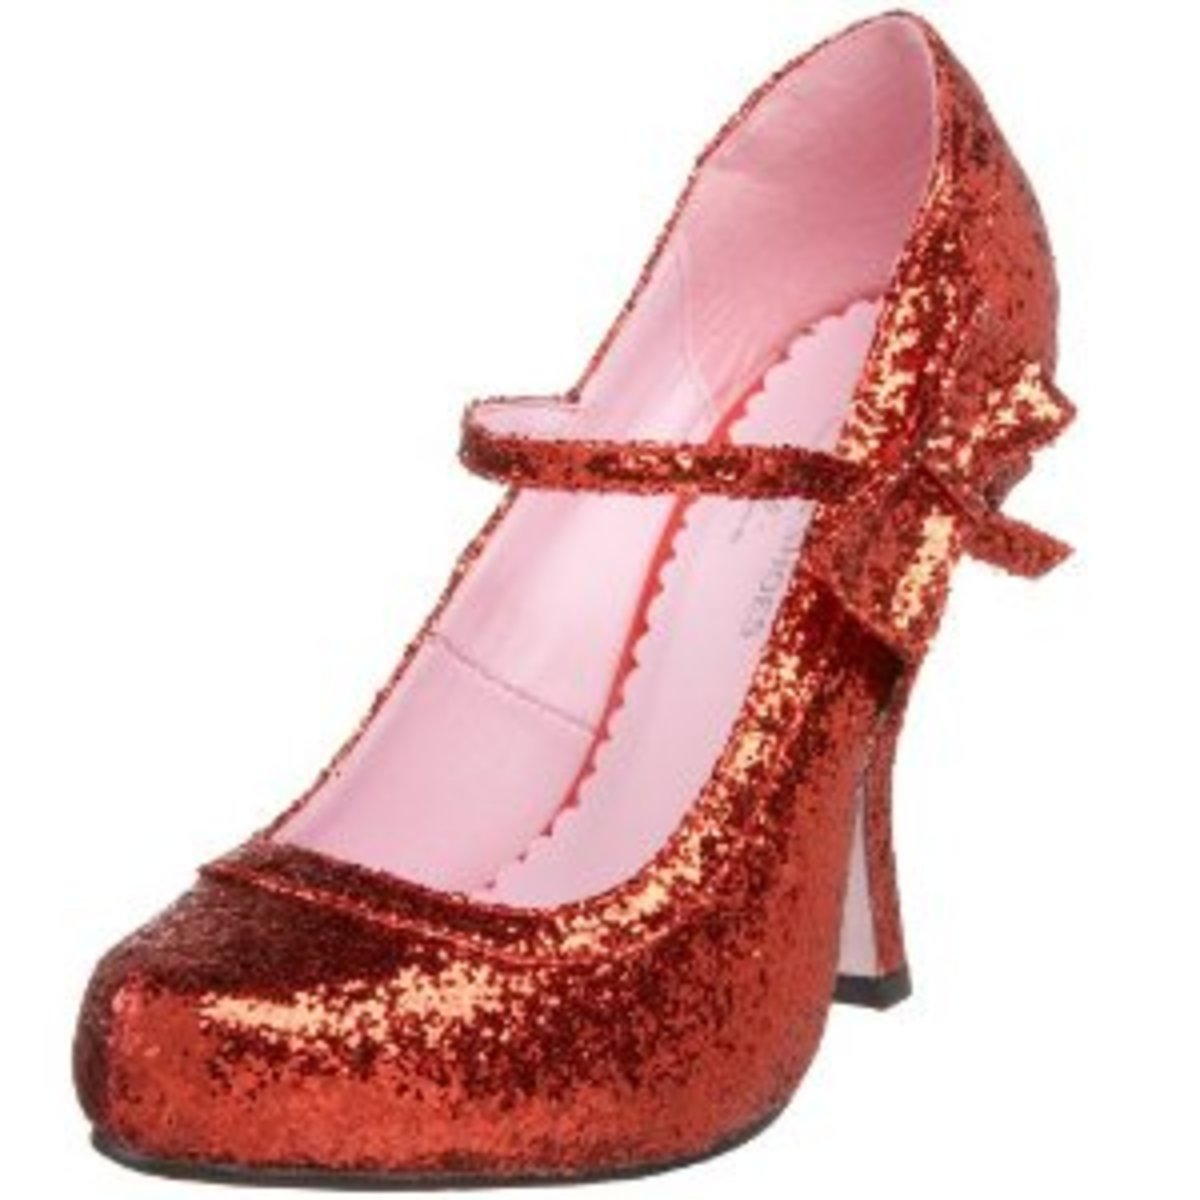 Where To Buy Your Very Own Ruby Red Slippers